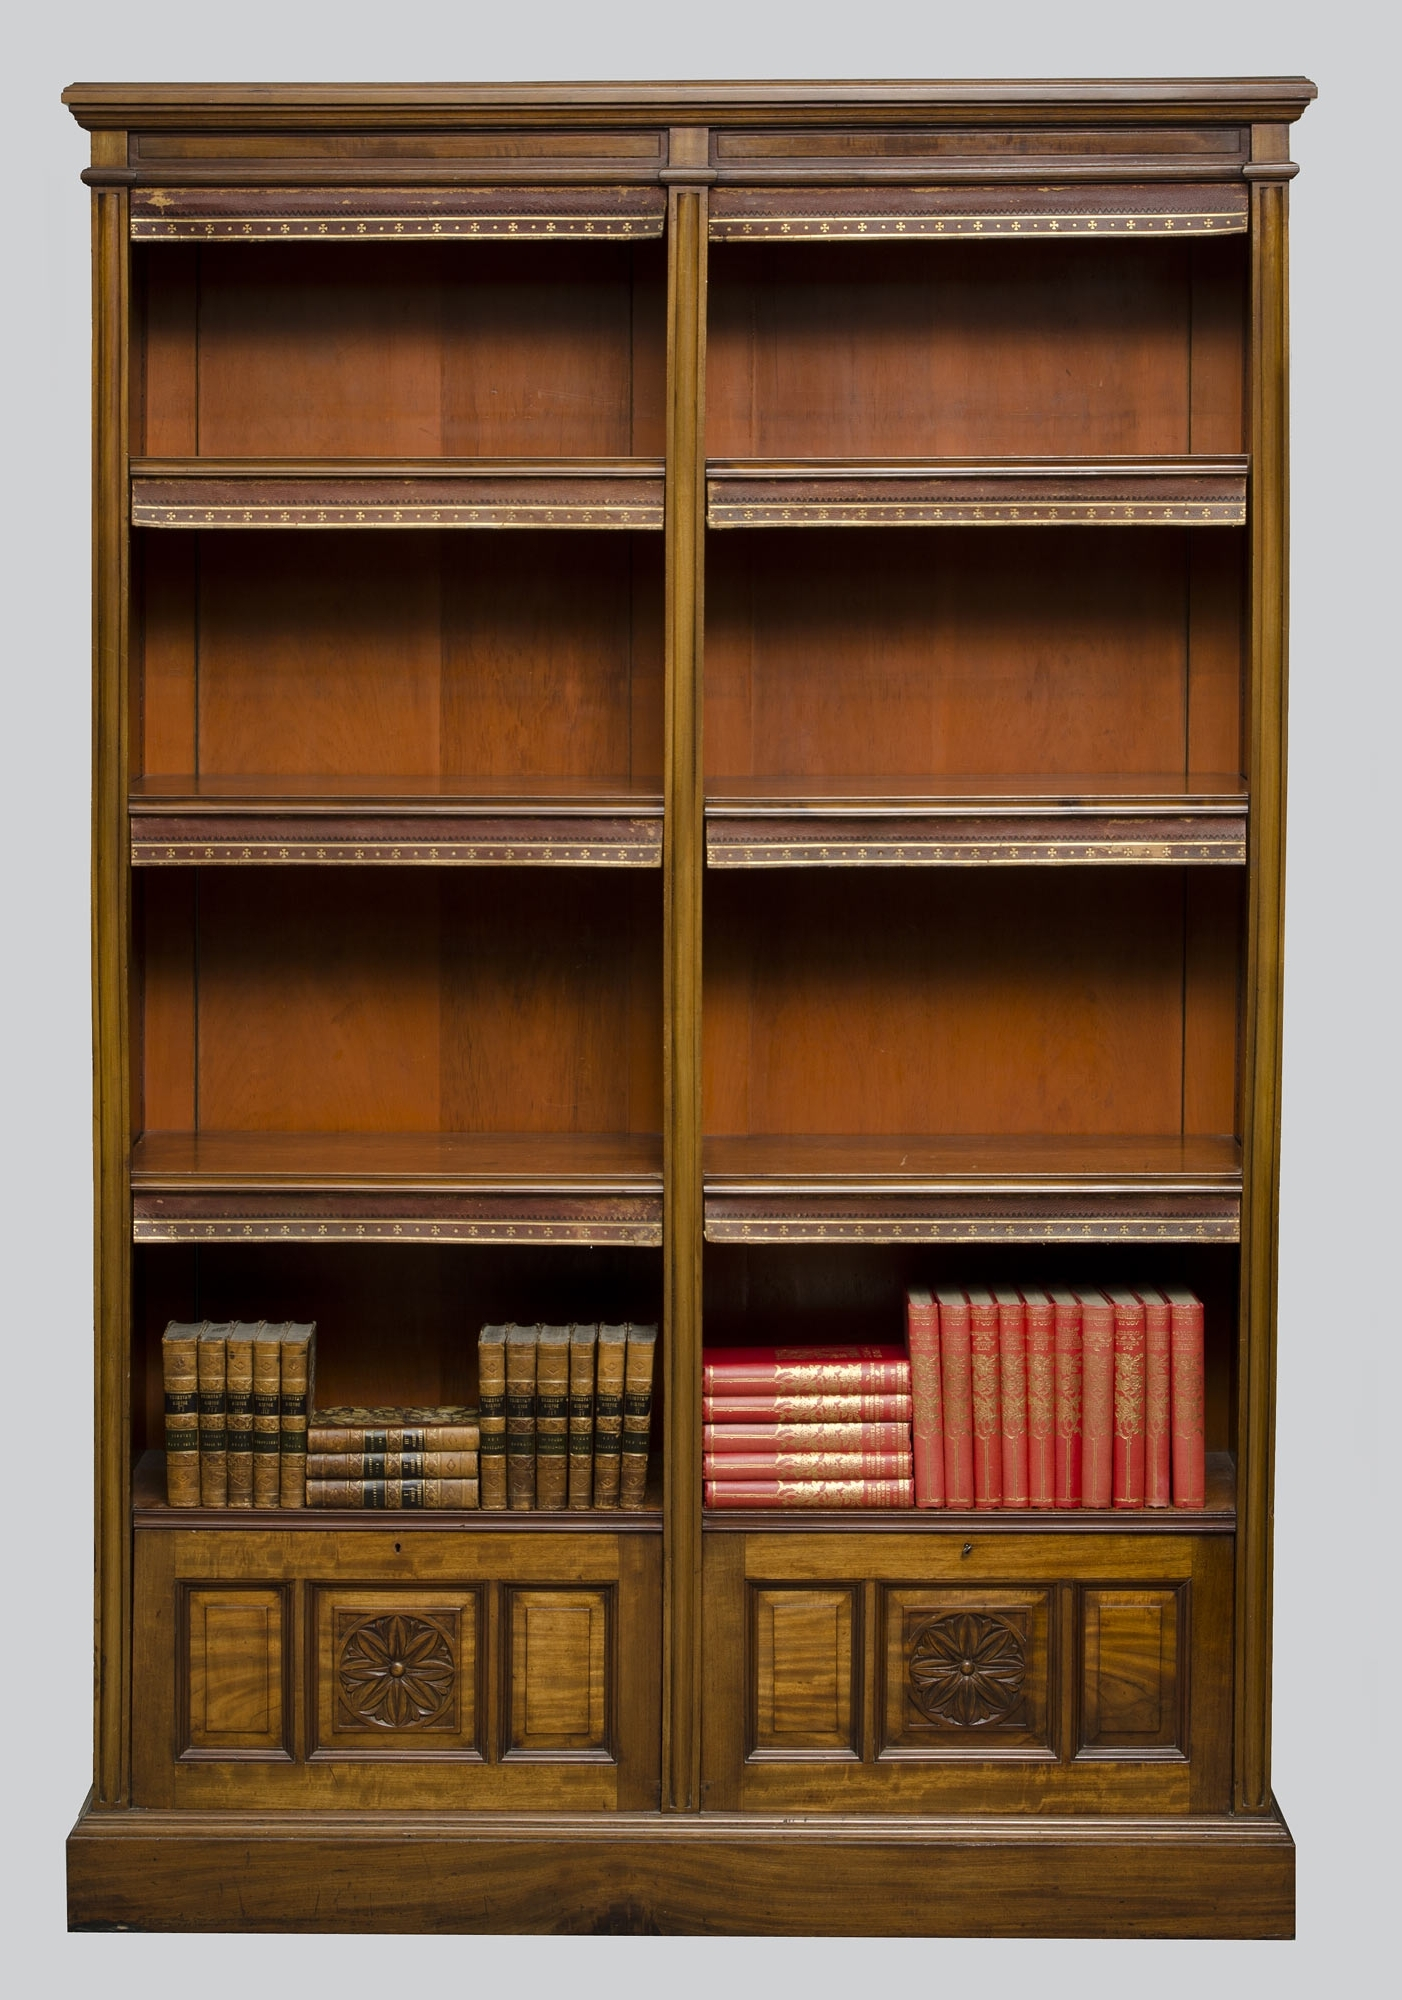 2018 Antique Bookcases To Decorate The Room In Antique Style – Home Decor In Antique Bookcases (View 5 of 15)